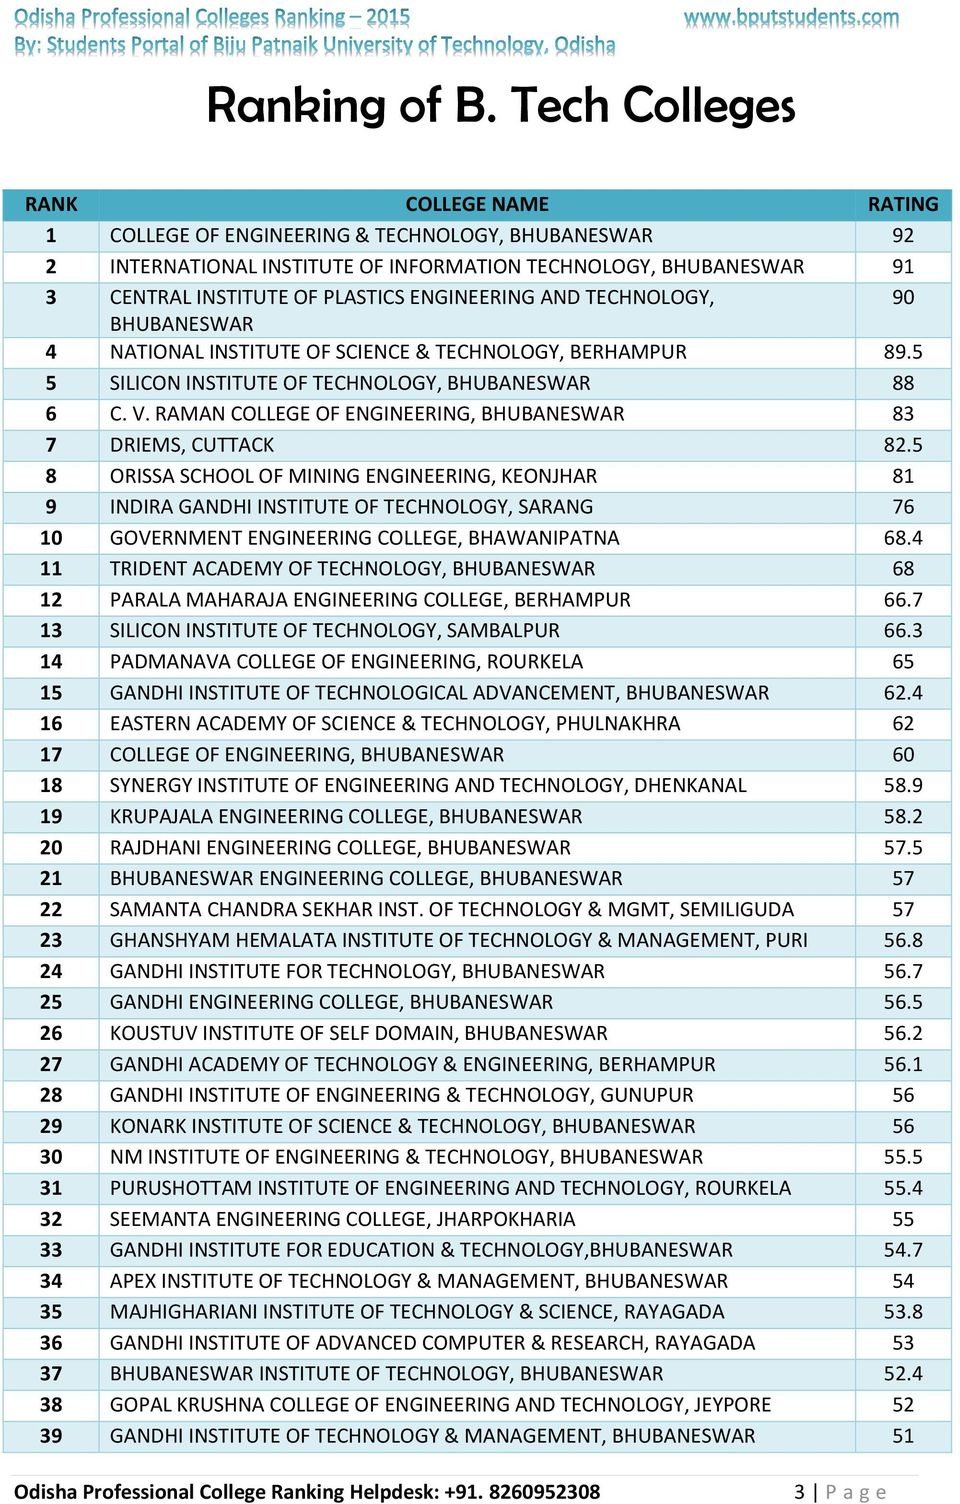 4 NATIONAL INSTITUTE OF SCIENCE & TECHNOLOGY, BERHAMPUR 89.5 5 SILICON INSTITUTE OF TECHNOLOGY, 88 6 C. V. RAMAN COLLEGE OF ENGINEERING, 83 7 DRIEMS, CUTTACK 82.